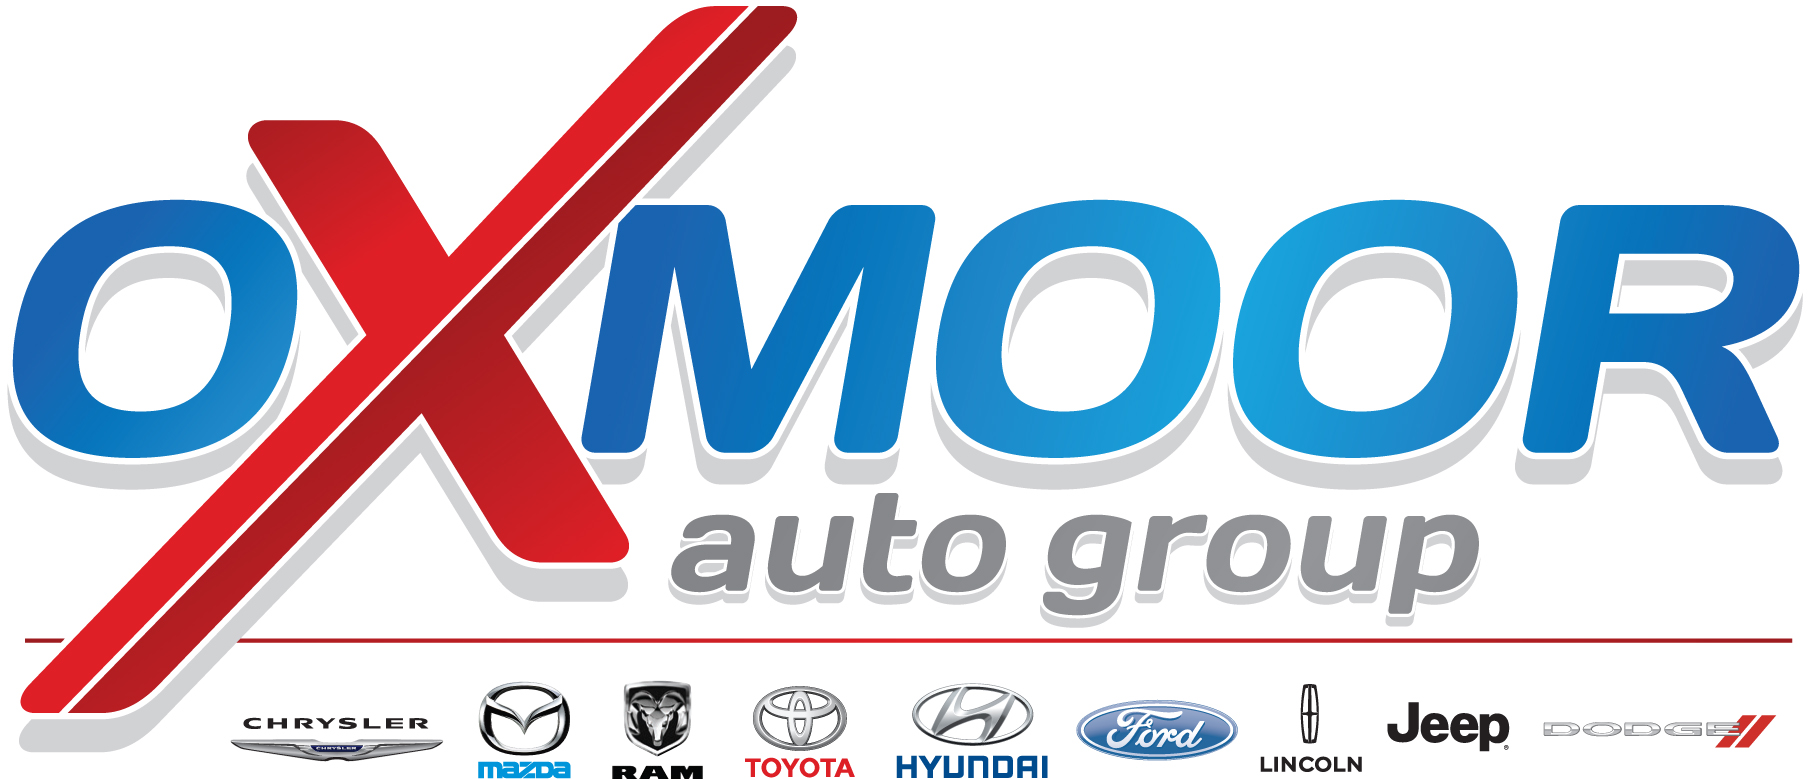 Oxmoor Auto Group with Brands